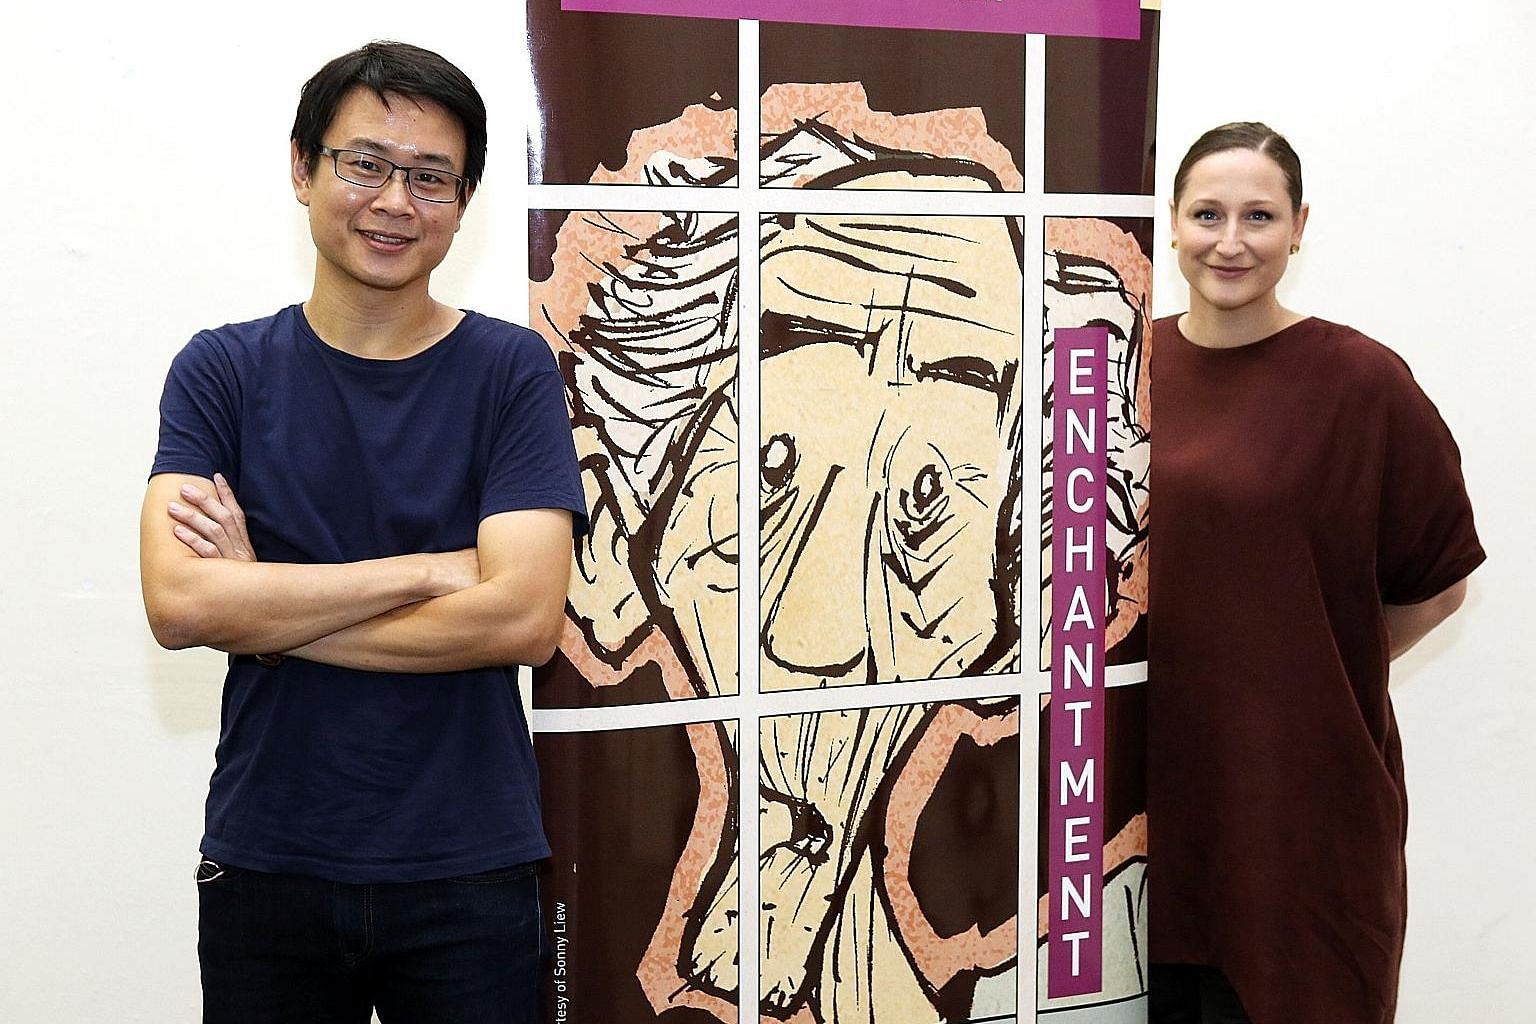 Two extra shows of Becoming Graphic, a collaboration between Sonny Liew and theatremaker Edith Podesta, have been added due to overwhelming demand.